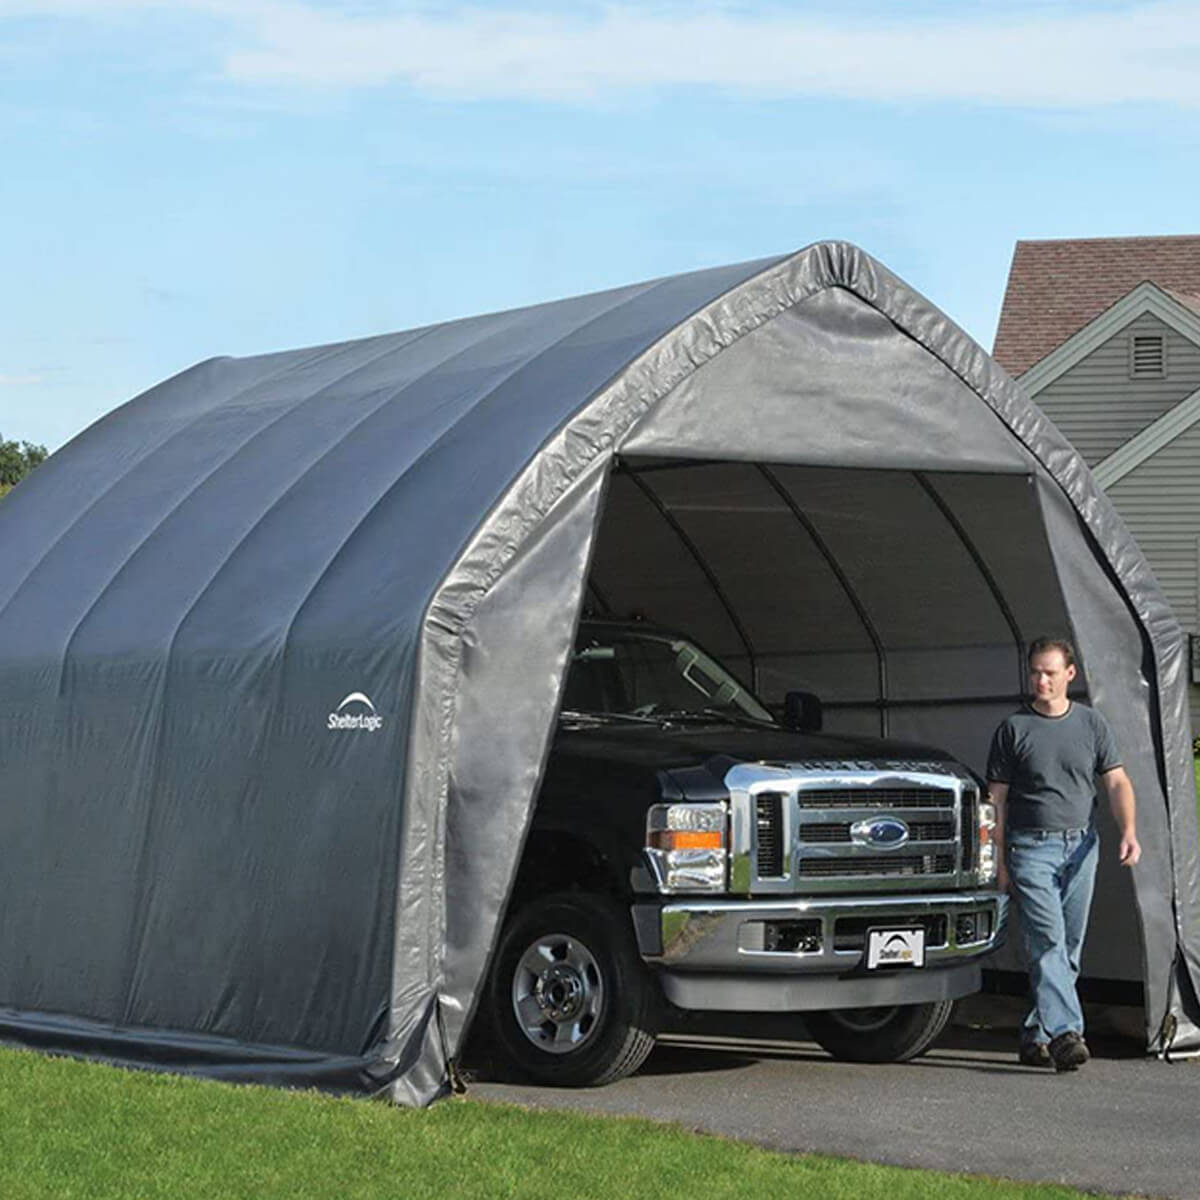 ShelterLogic Garage-in-a-Box - Gray - 13' X 20' X 12'